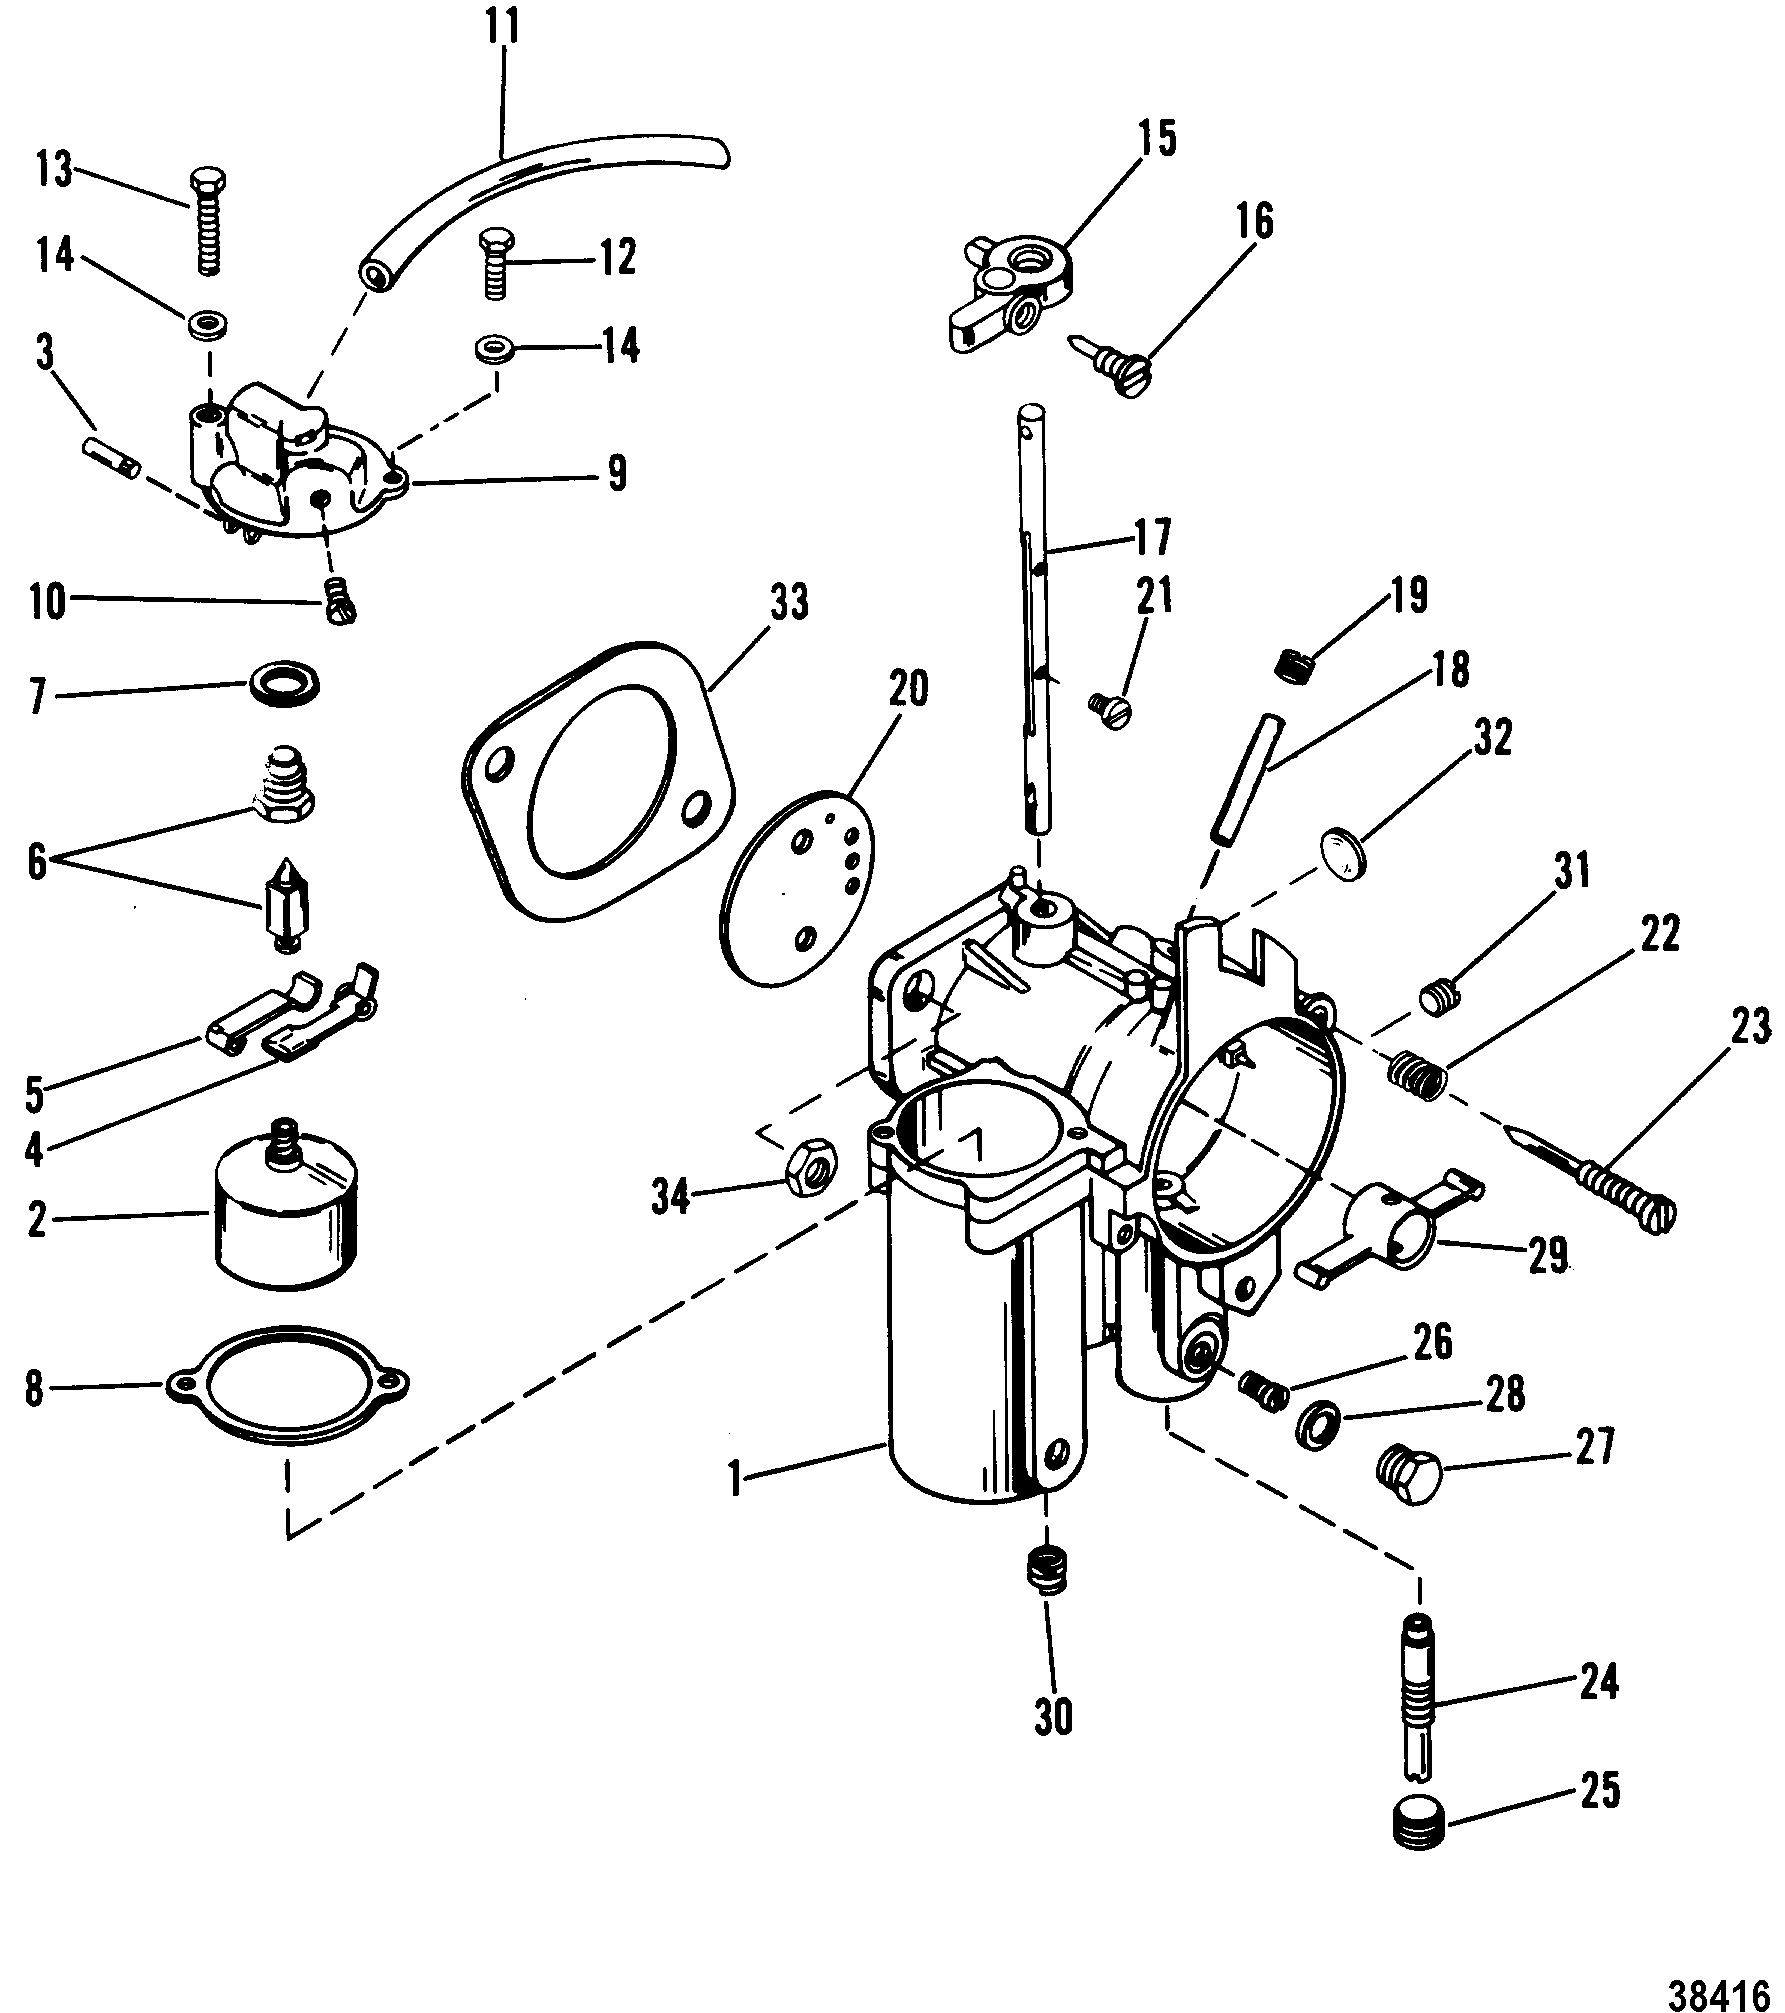 50 Hp Mercury Carburetor Diagram